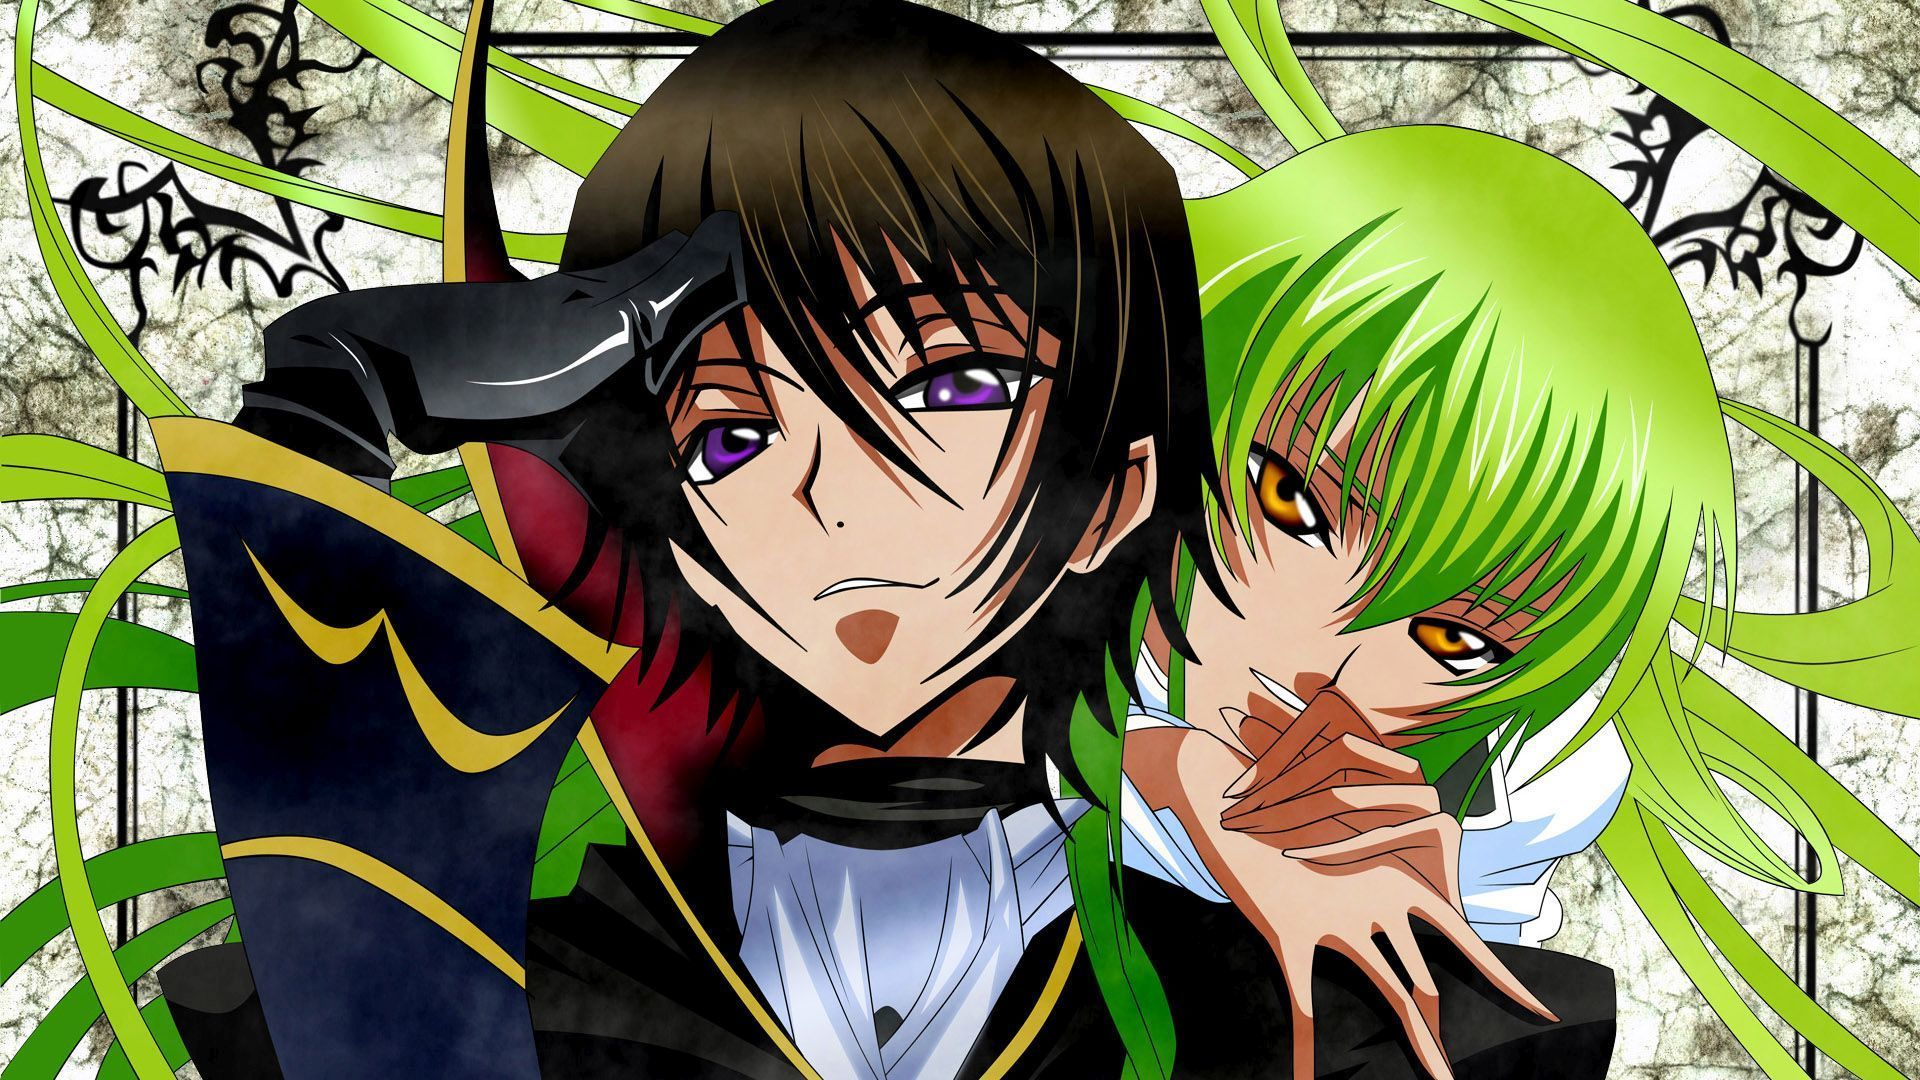 Cc And Lelouch Lamperouge Code Geass Wallpaper Anime